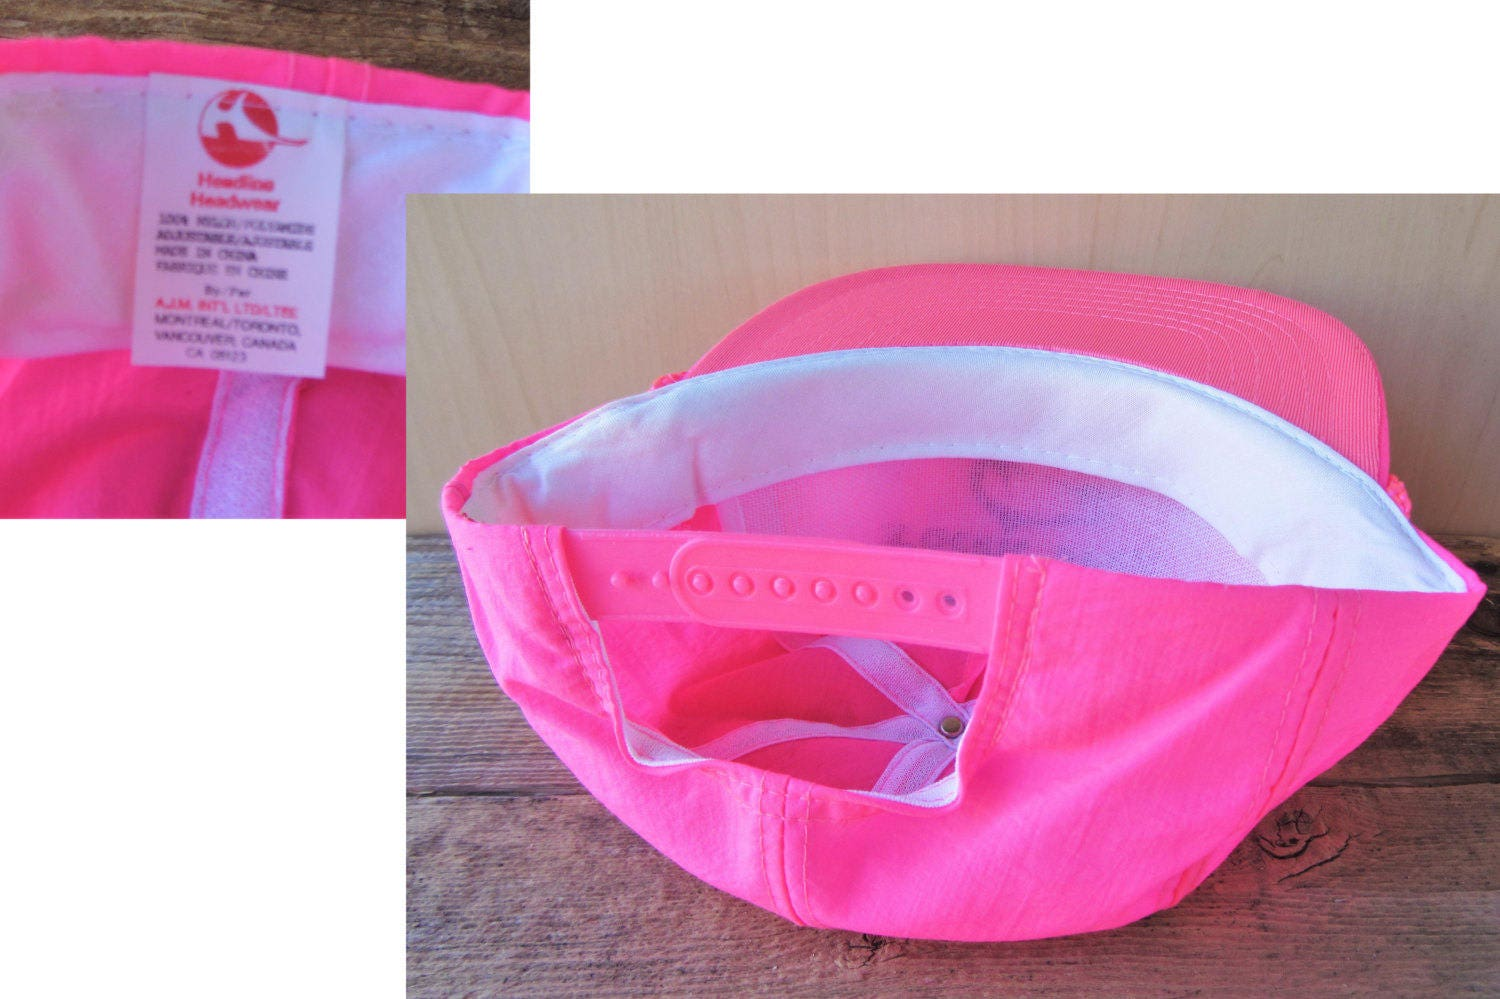 a8ef6f198fd PACIFIC WEST CHARTERS Vintage 90s Pink Neon Snapback Hat Fishing Tours  Defunct Promo Cap Rope Lined